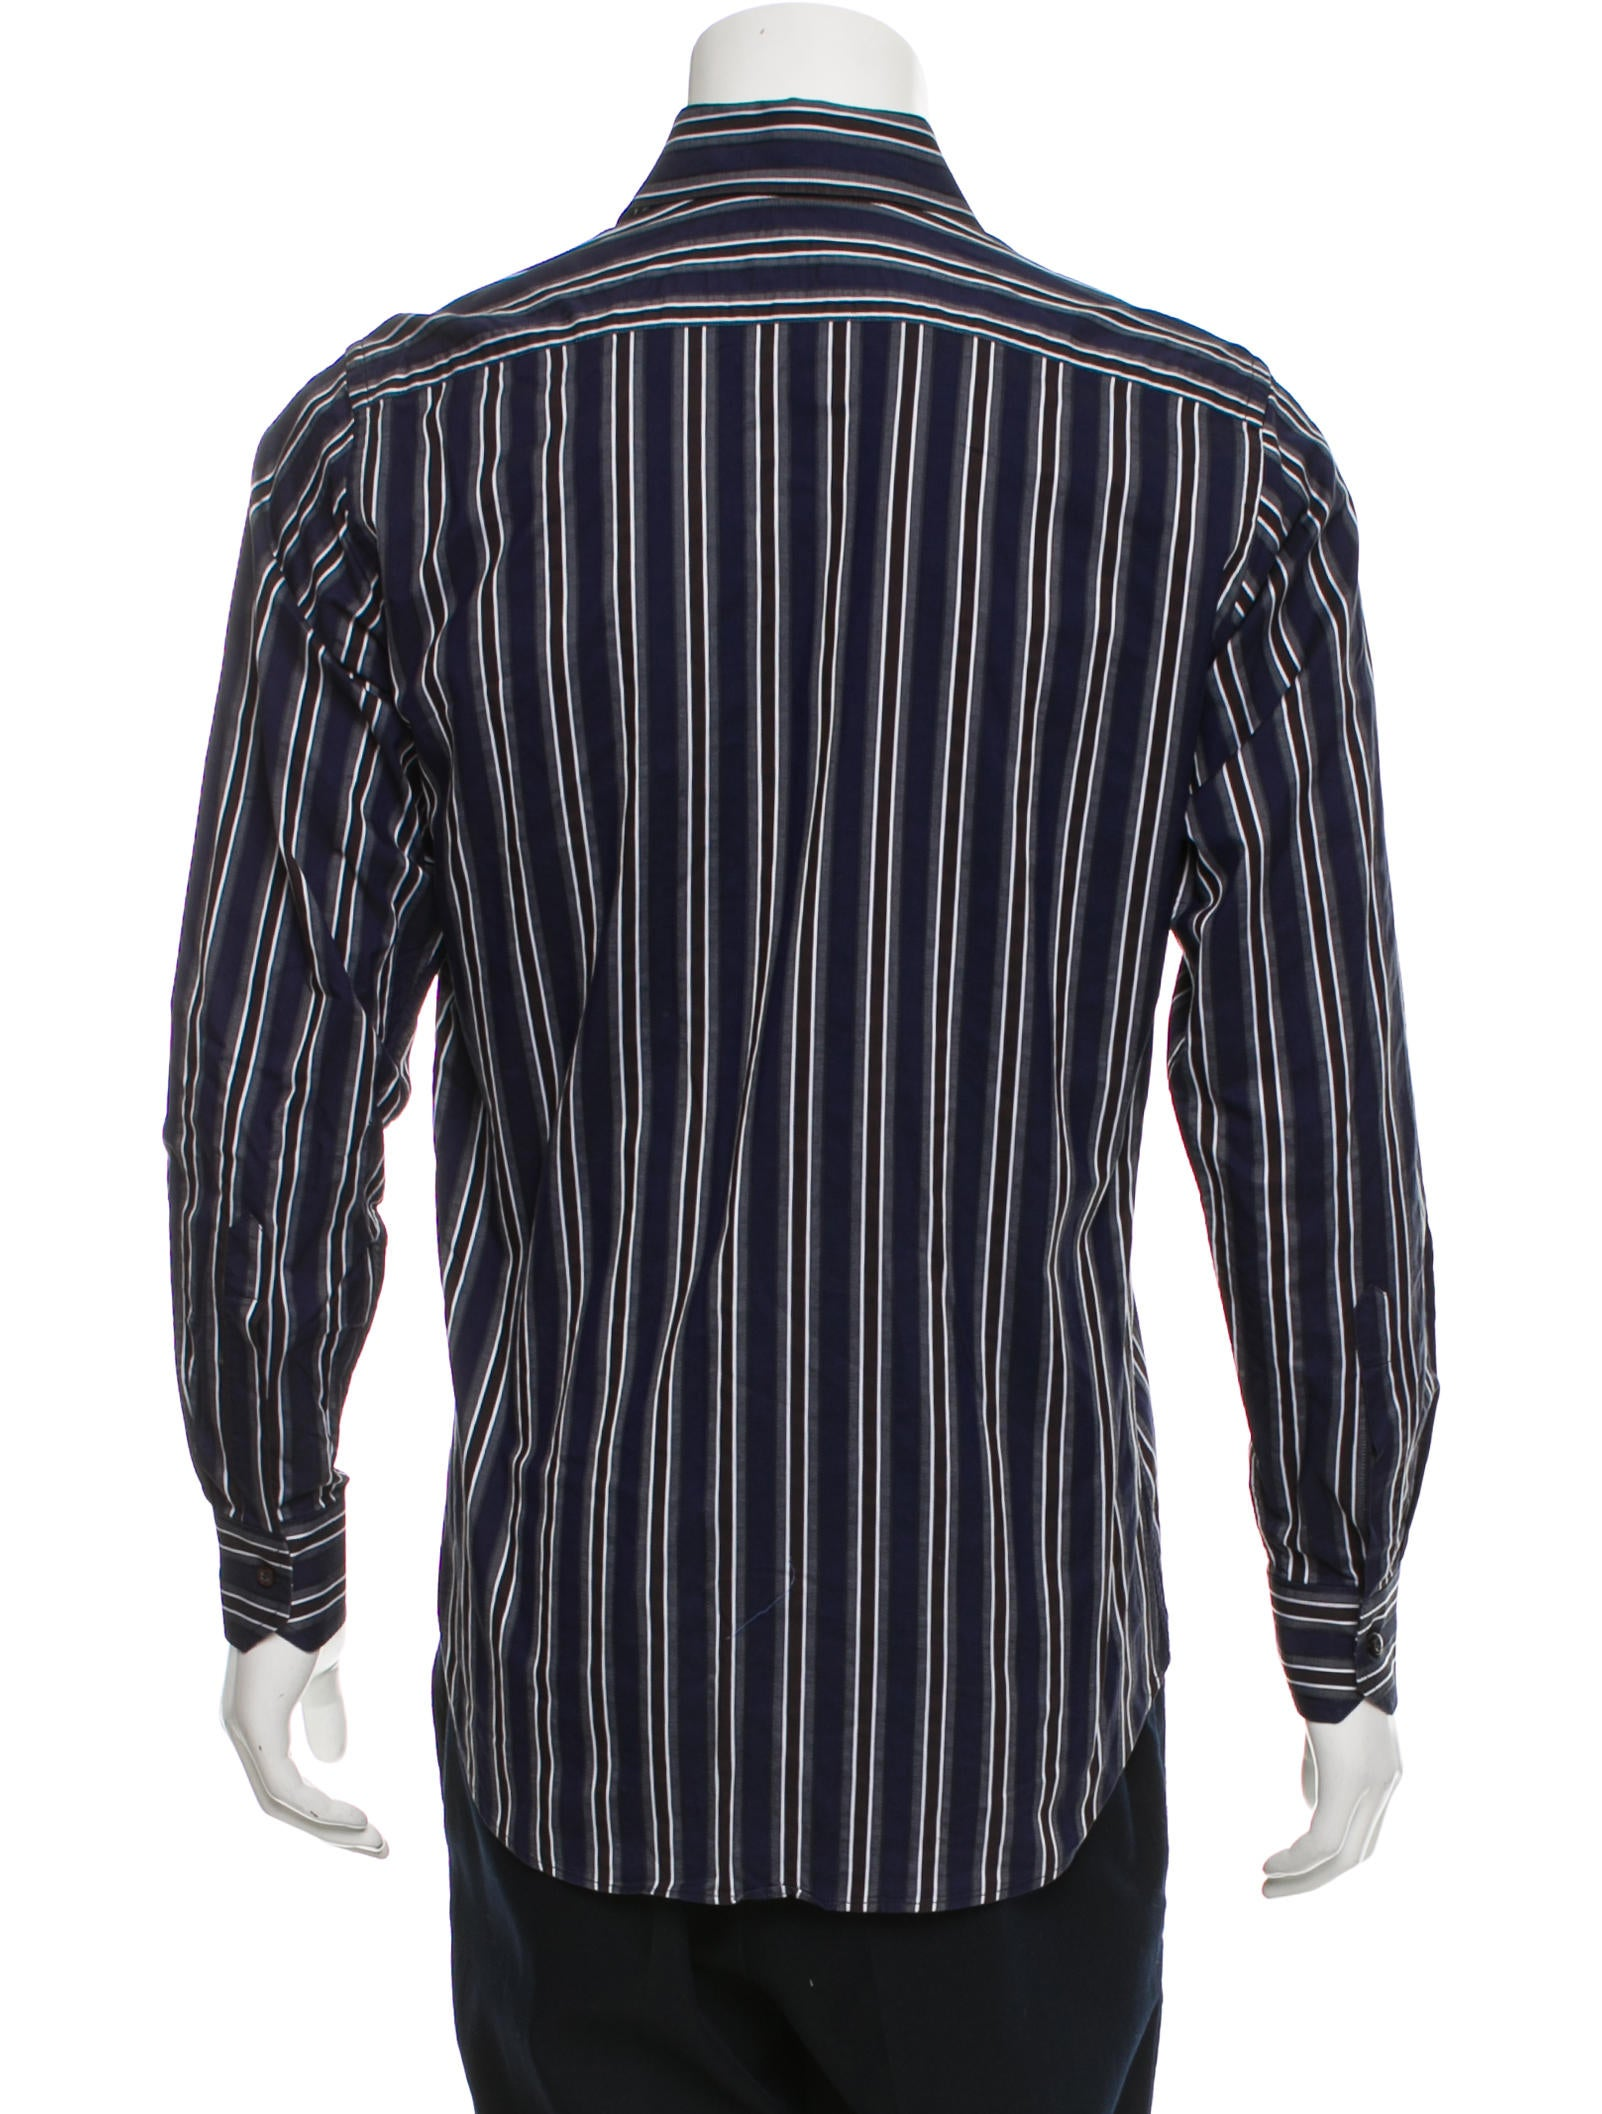 Etro Striped Button Up Shirt Clothing Etr47837 The